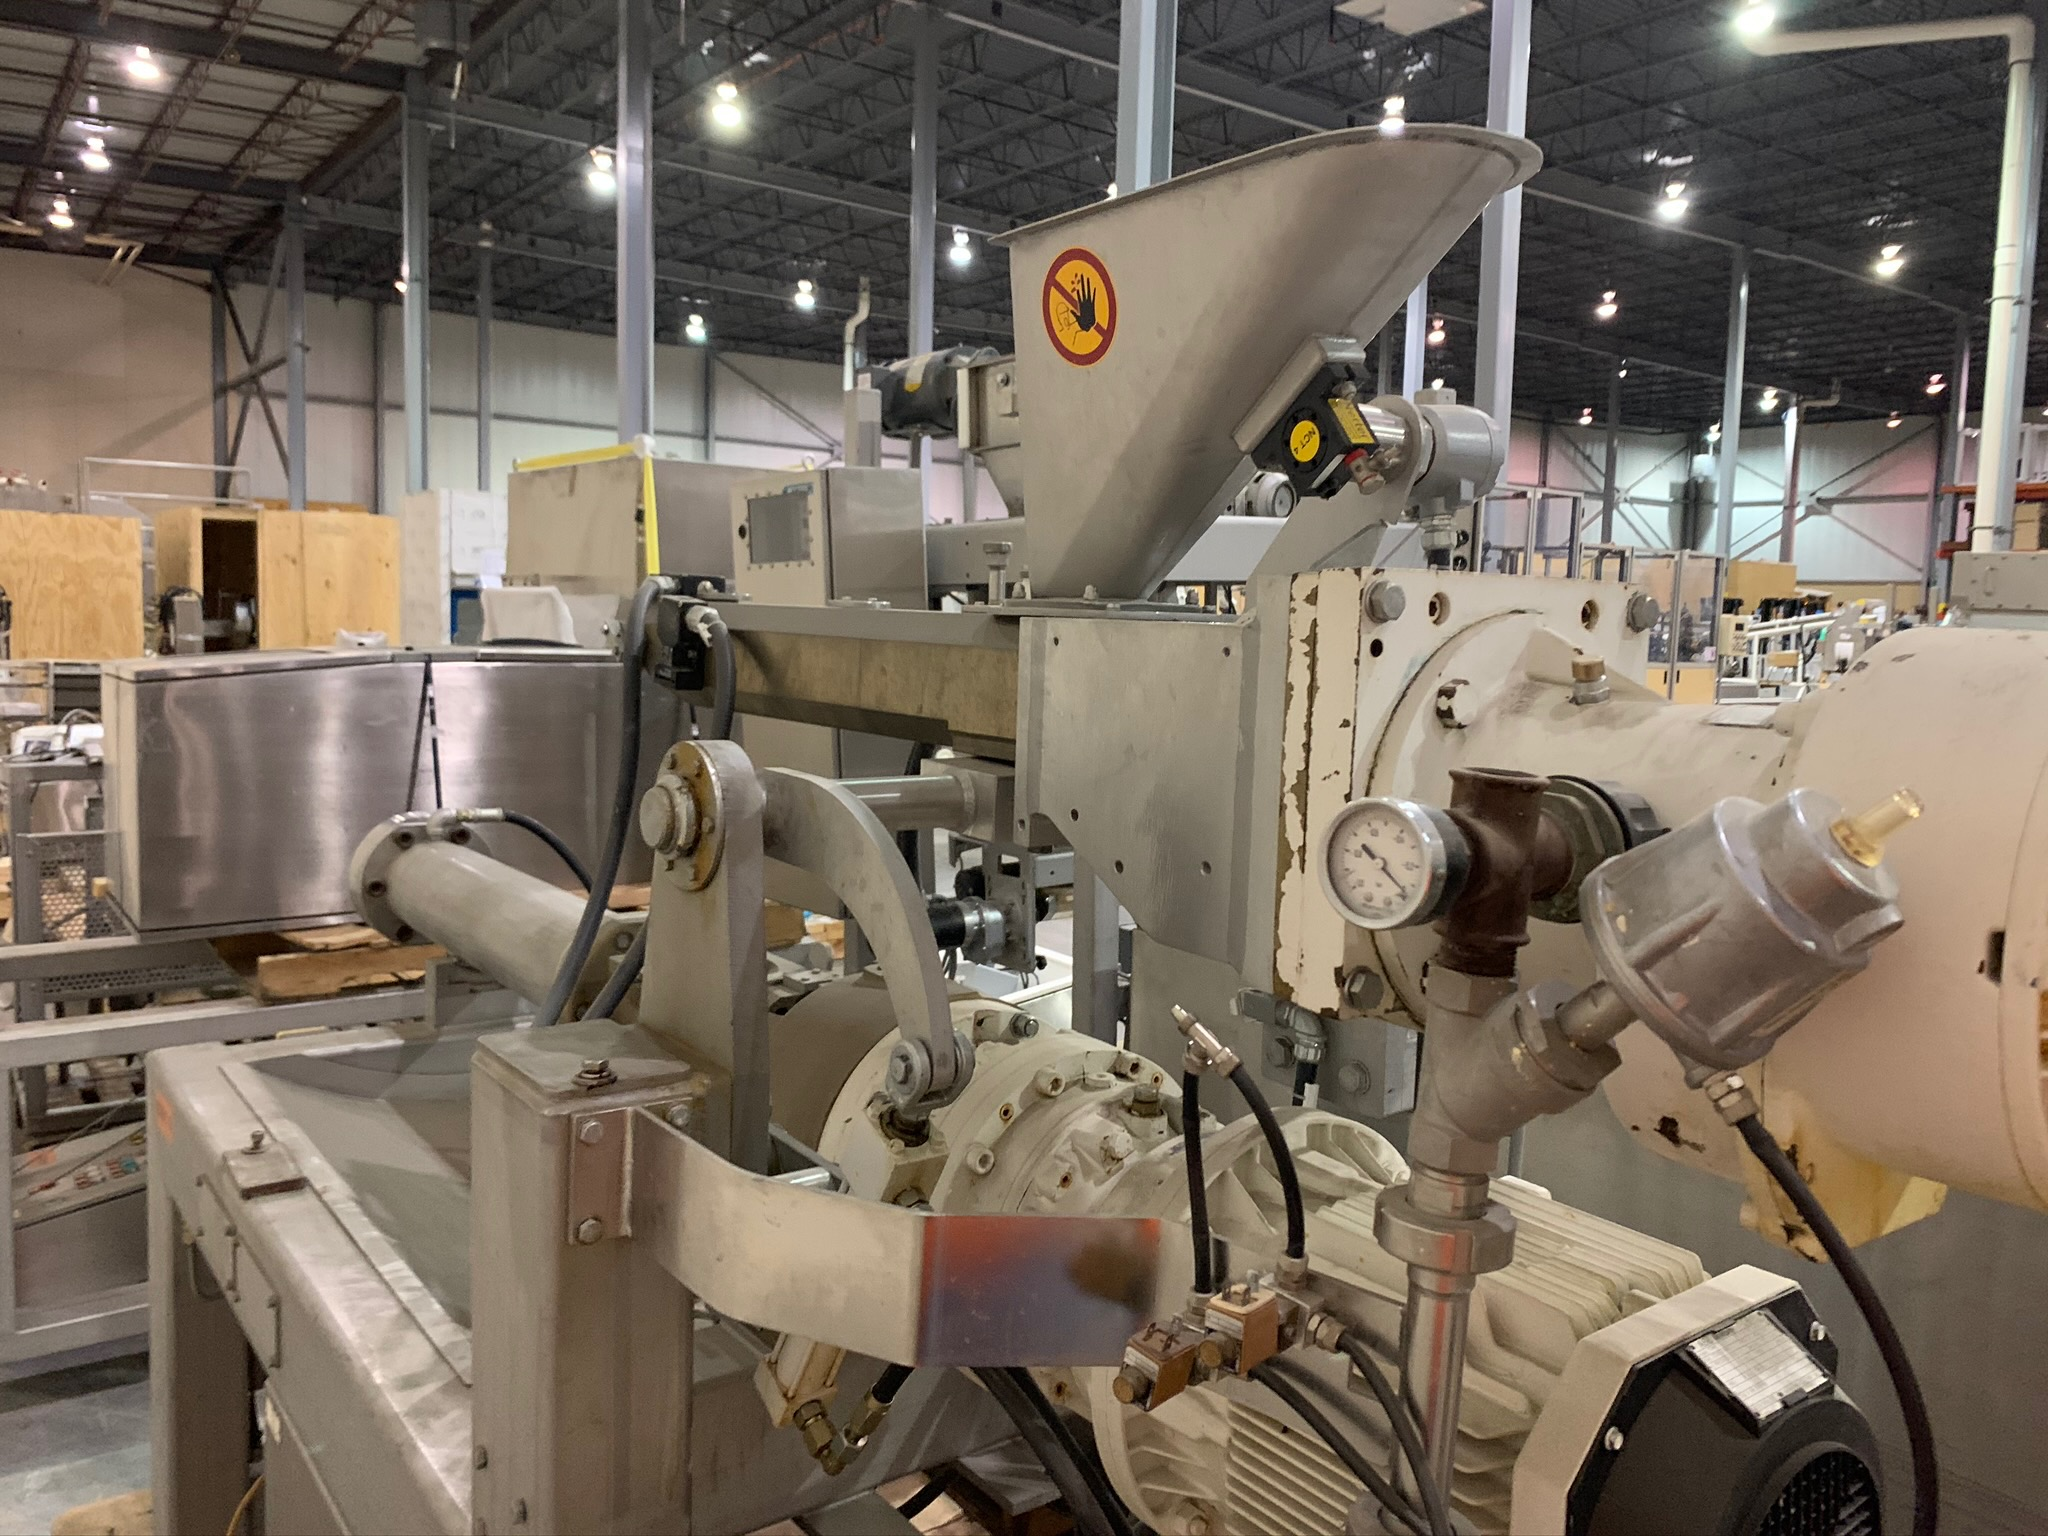 Buhler Twin Screw Extruder Model M-MN-400 S/N 10321928 with Control Panels and Auger Cart, with (Rig - Image 2 of 9